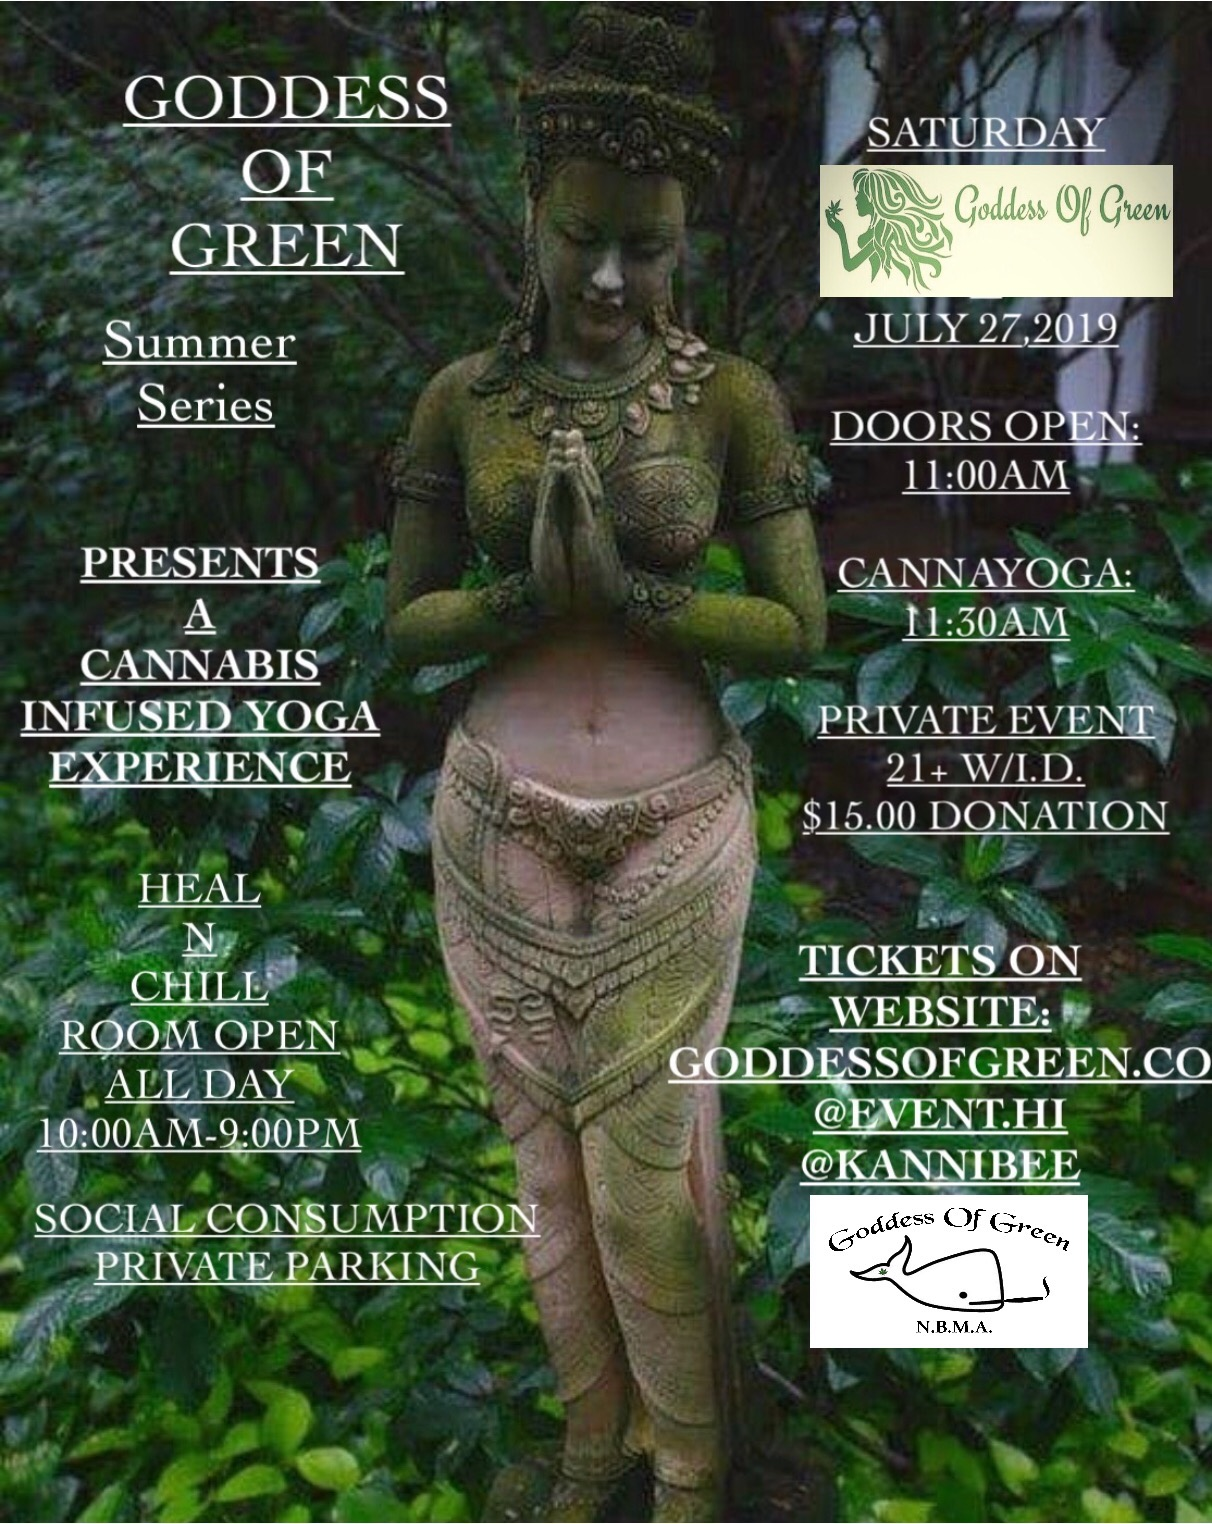 Summer Series A Cannabis Infused Yoga Experience